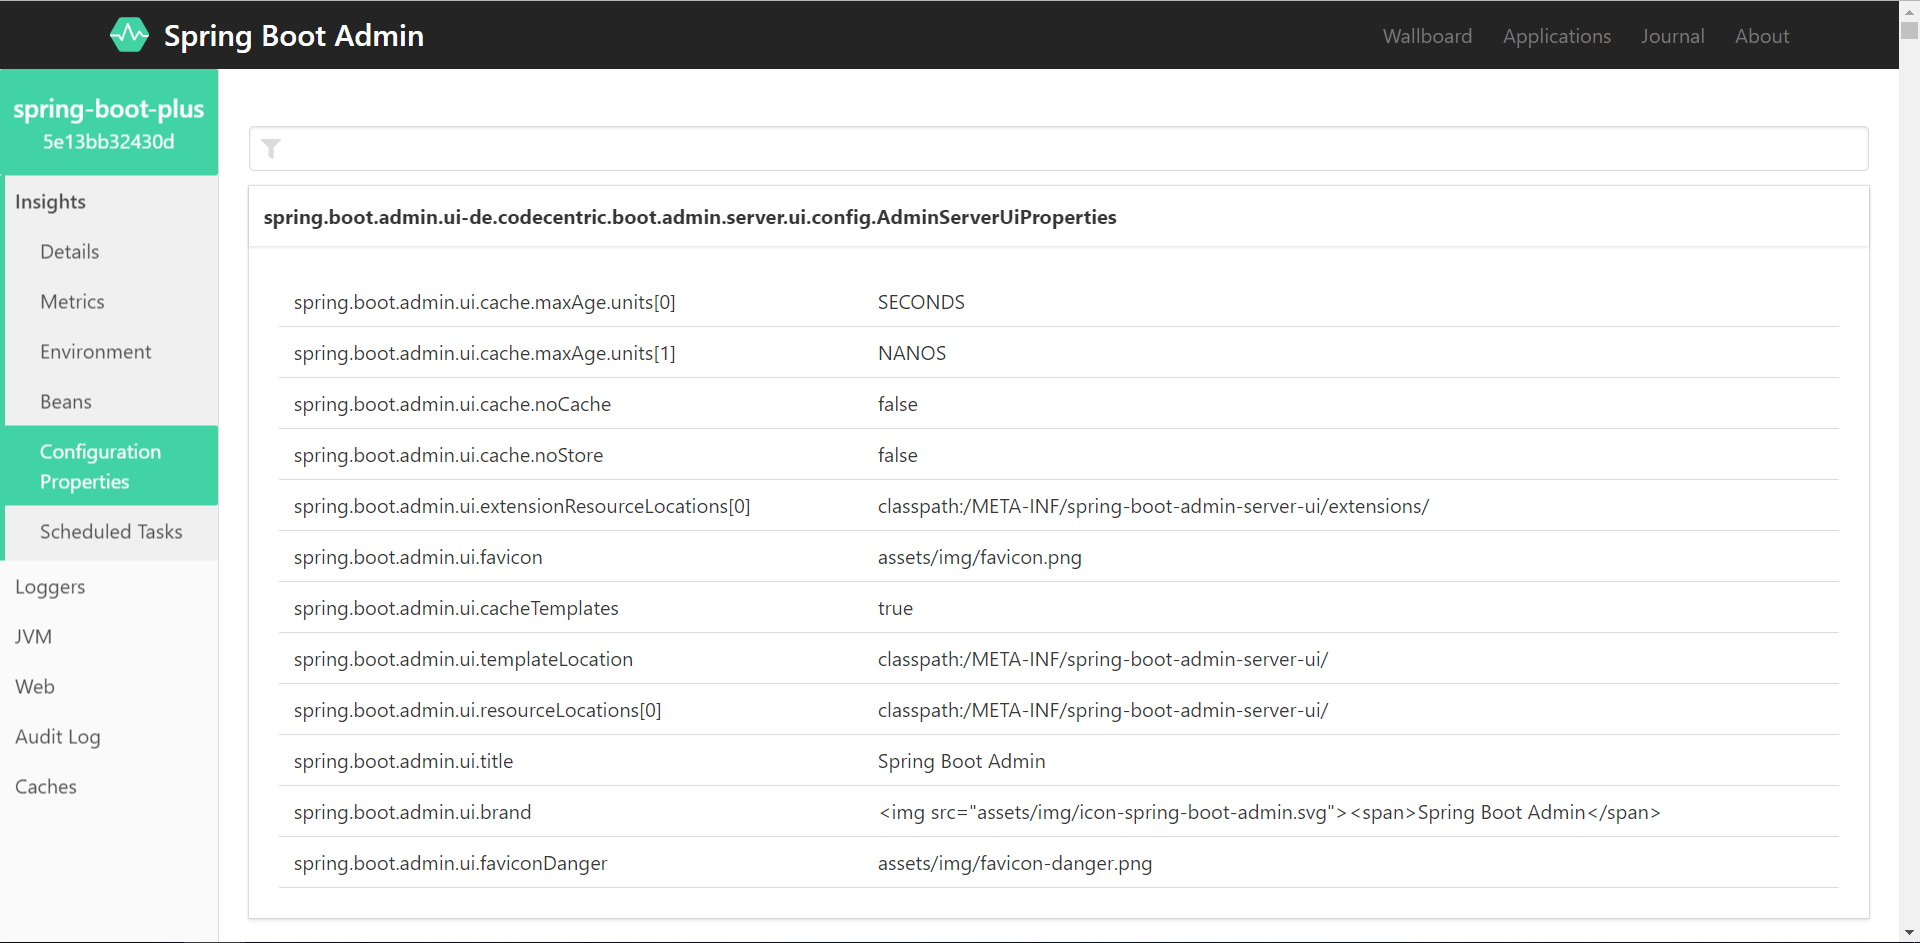 Spring-boot-plus integrated Spring Boot Admin management and